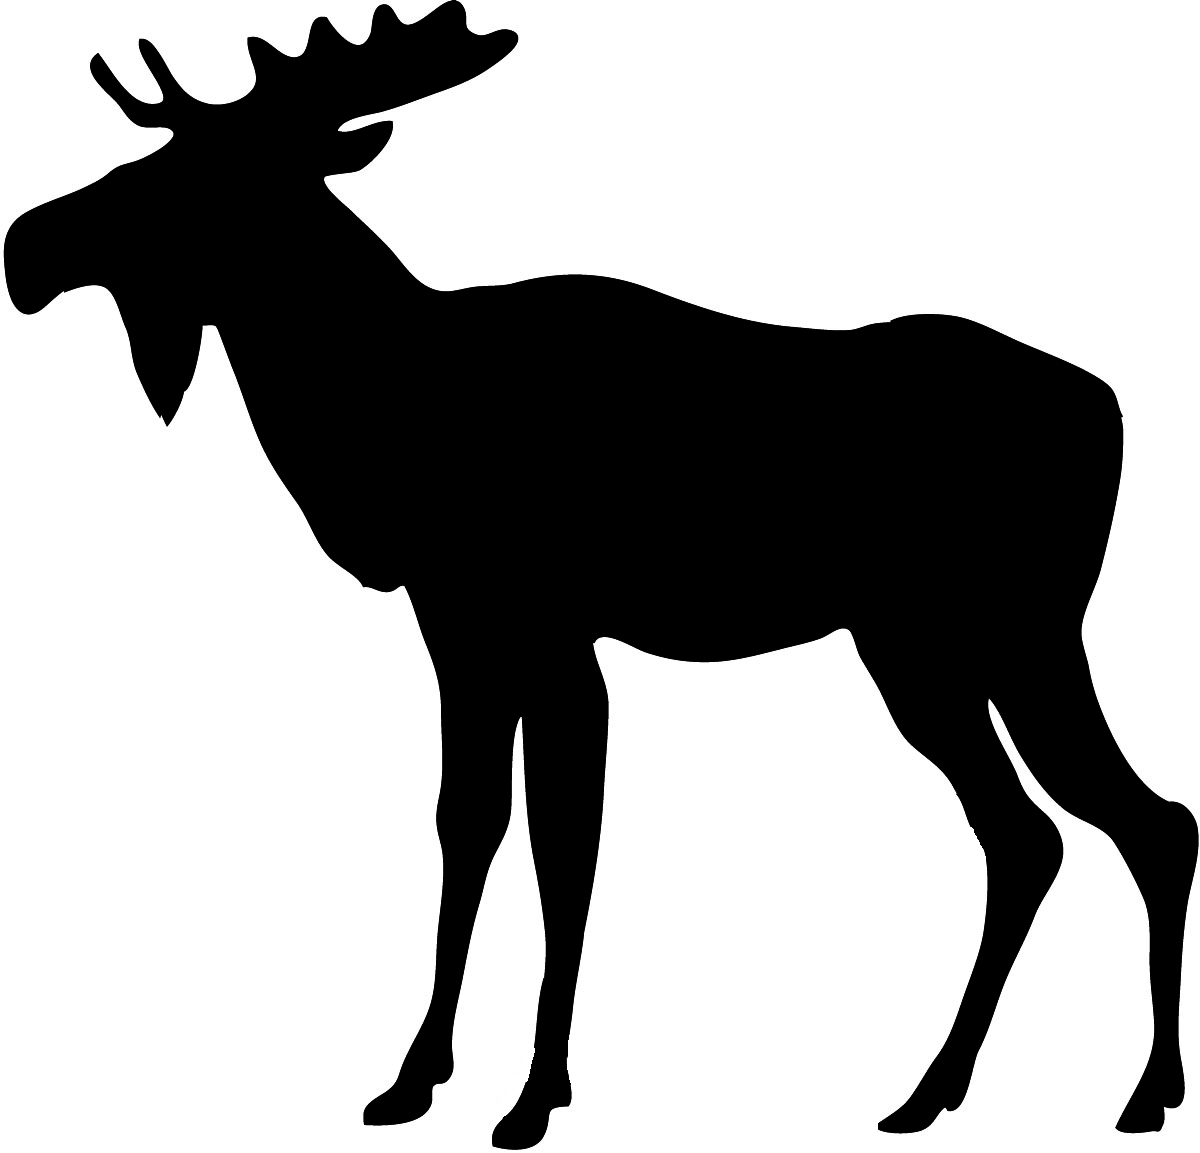 hight resolution of image of moose clipart 9 clip art silhouette free